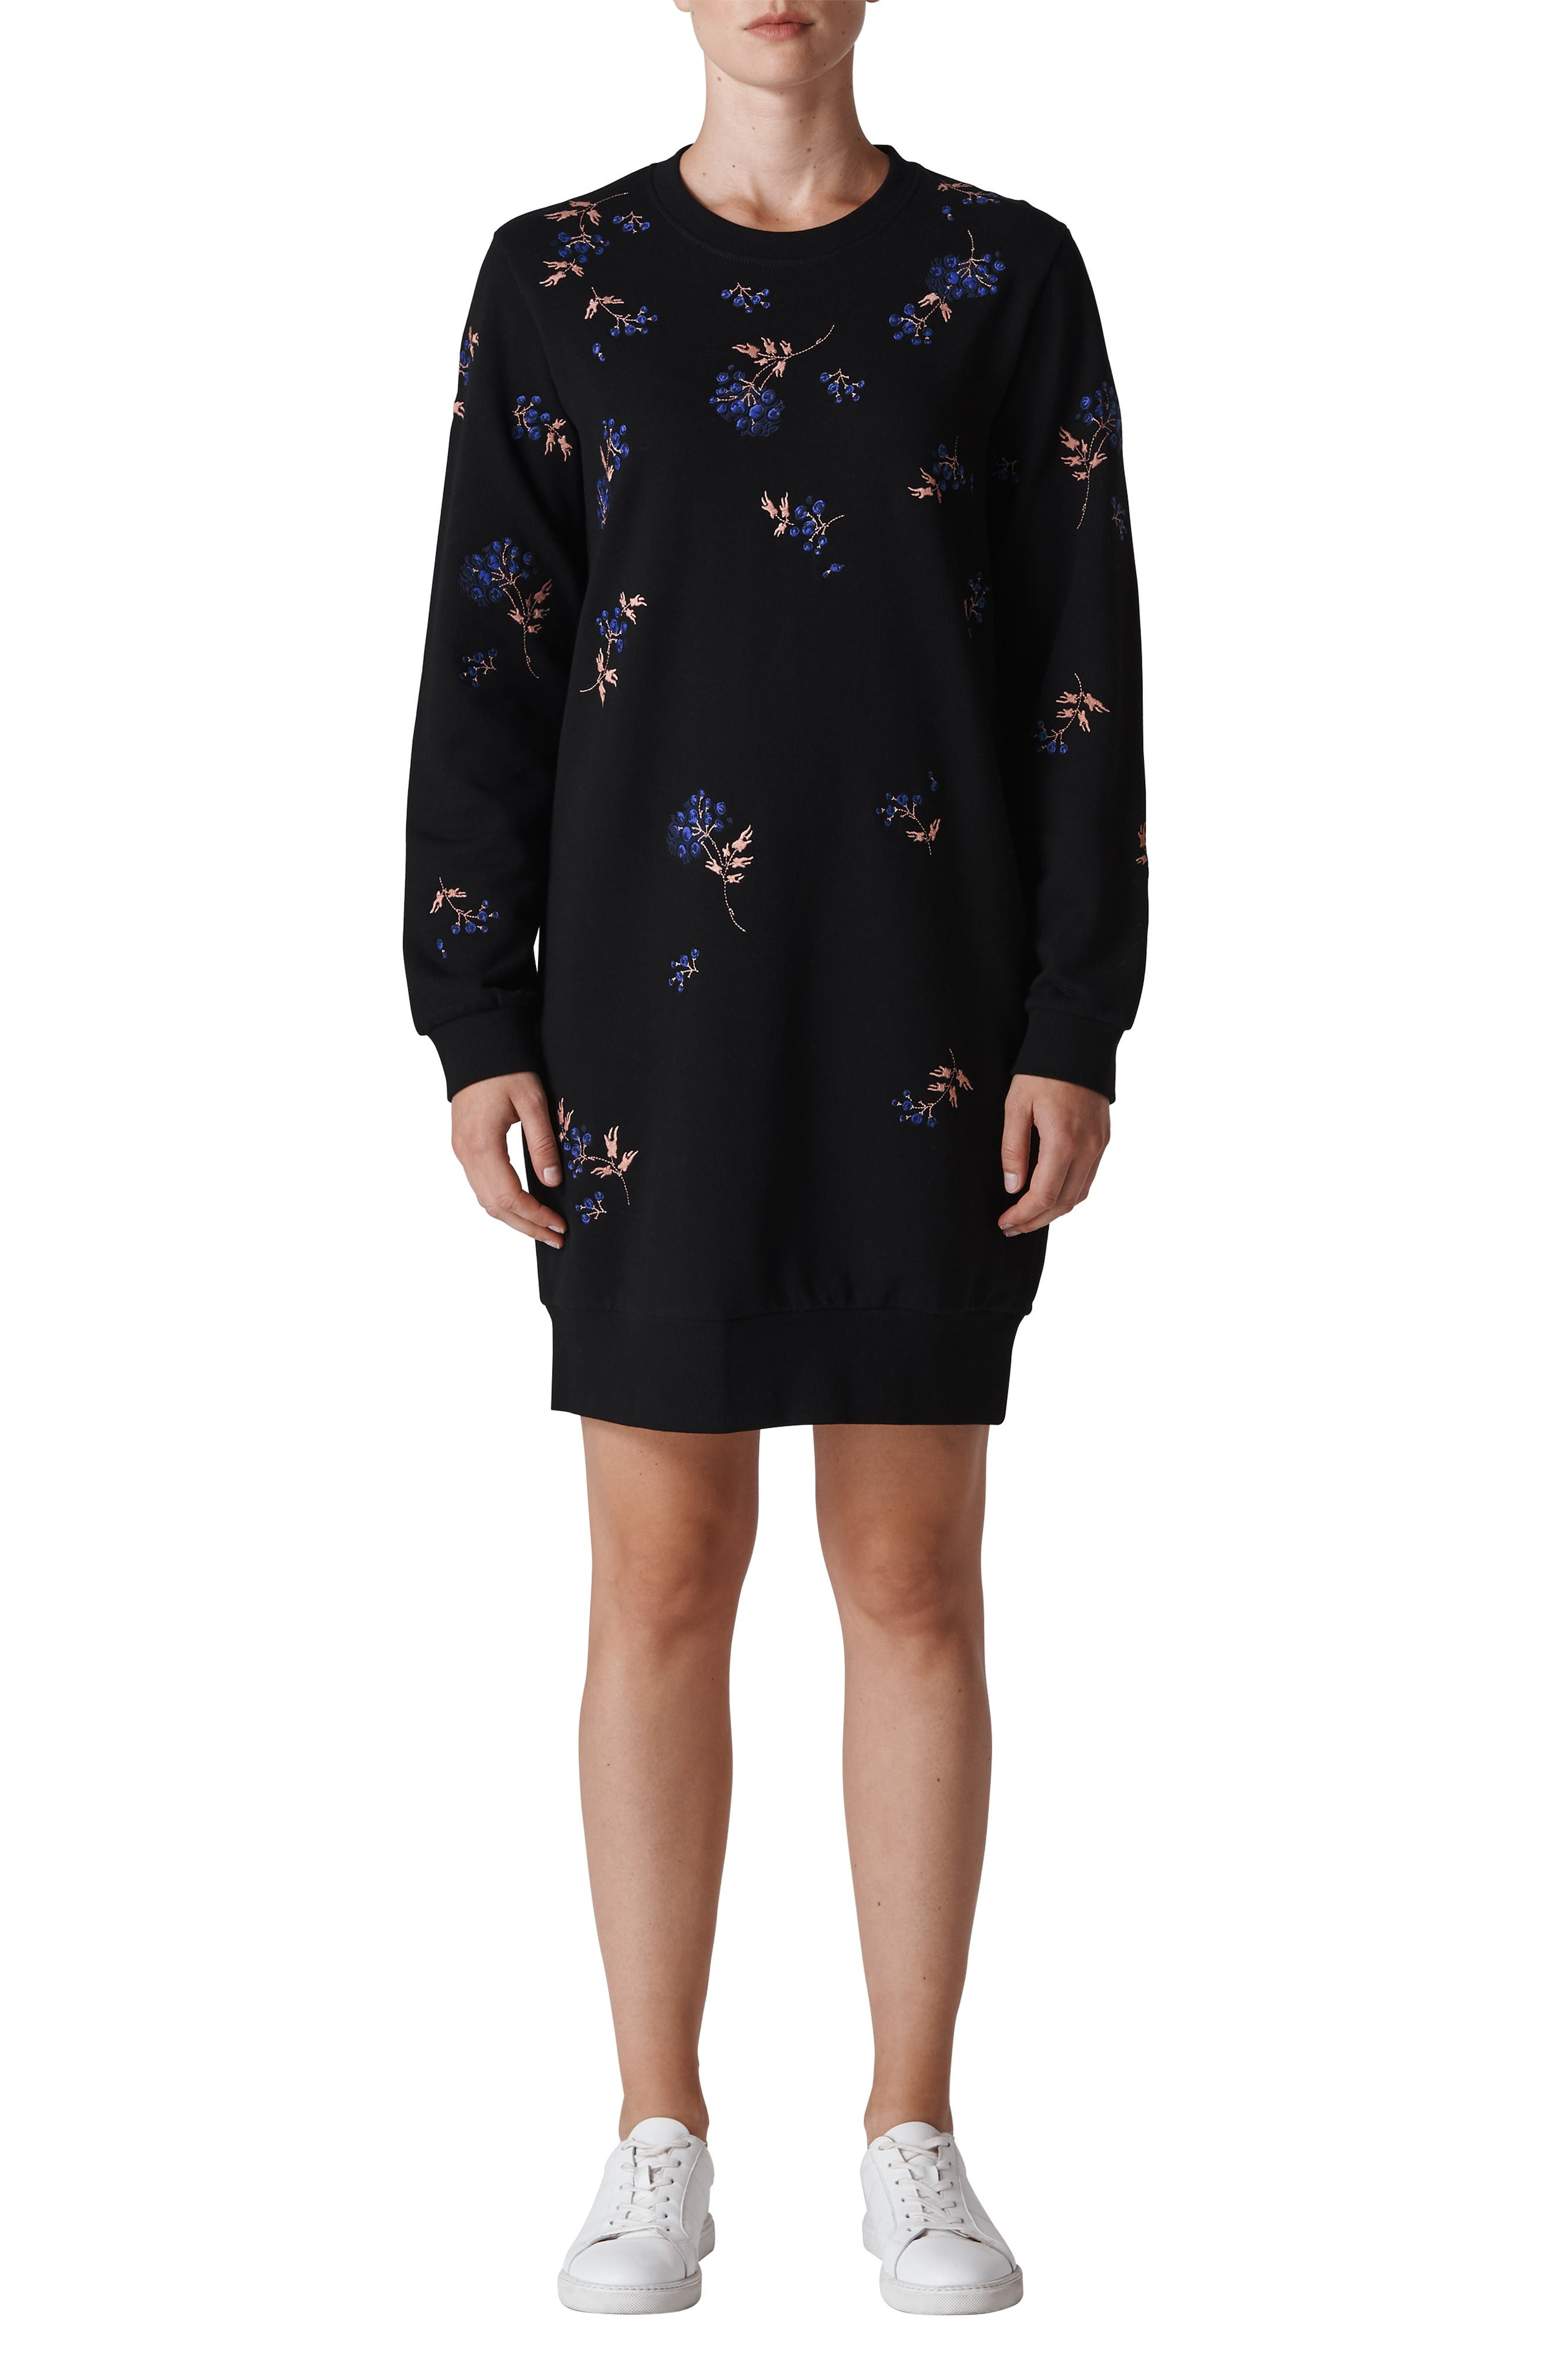 Elderberry Embroidered Sweatshirt Dress,                             Main thumbnail 1, color,                             001